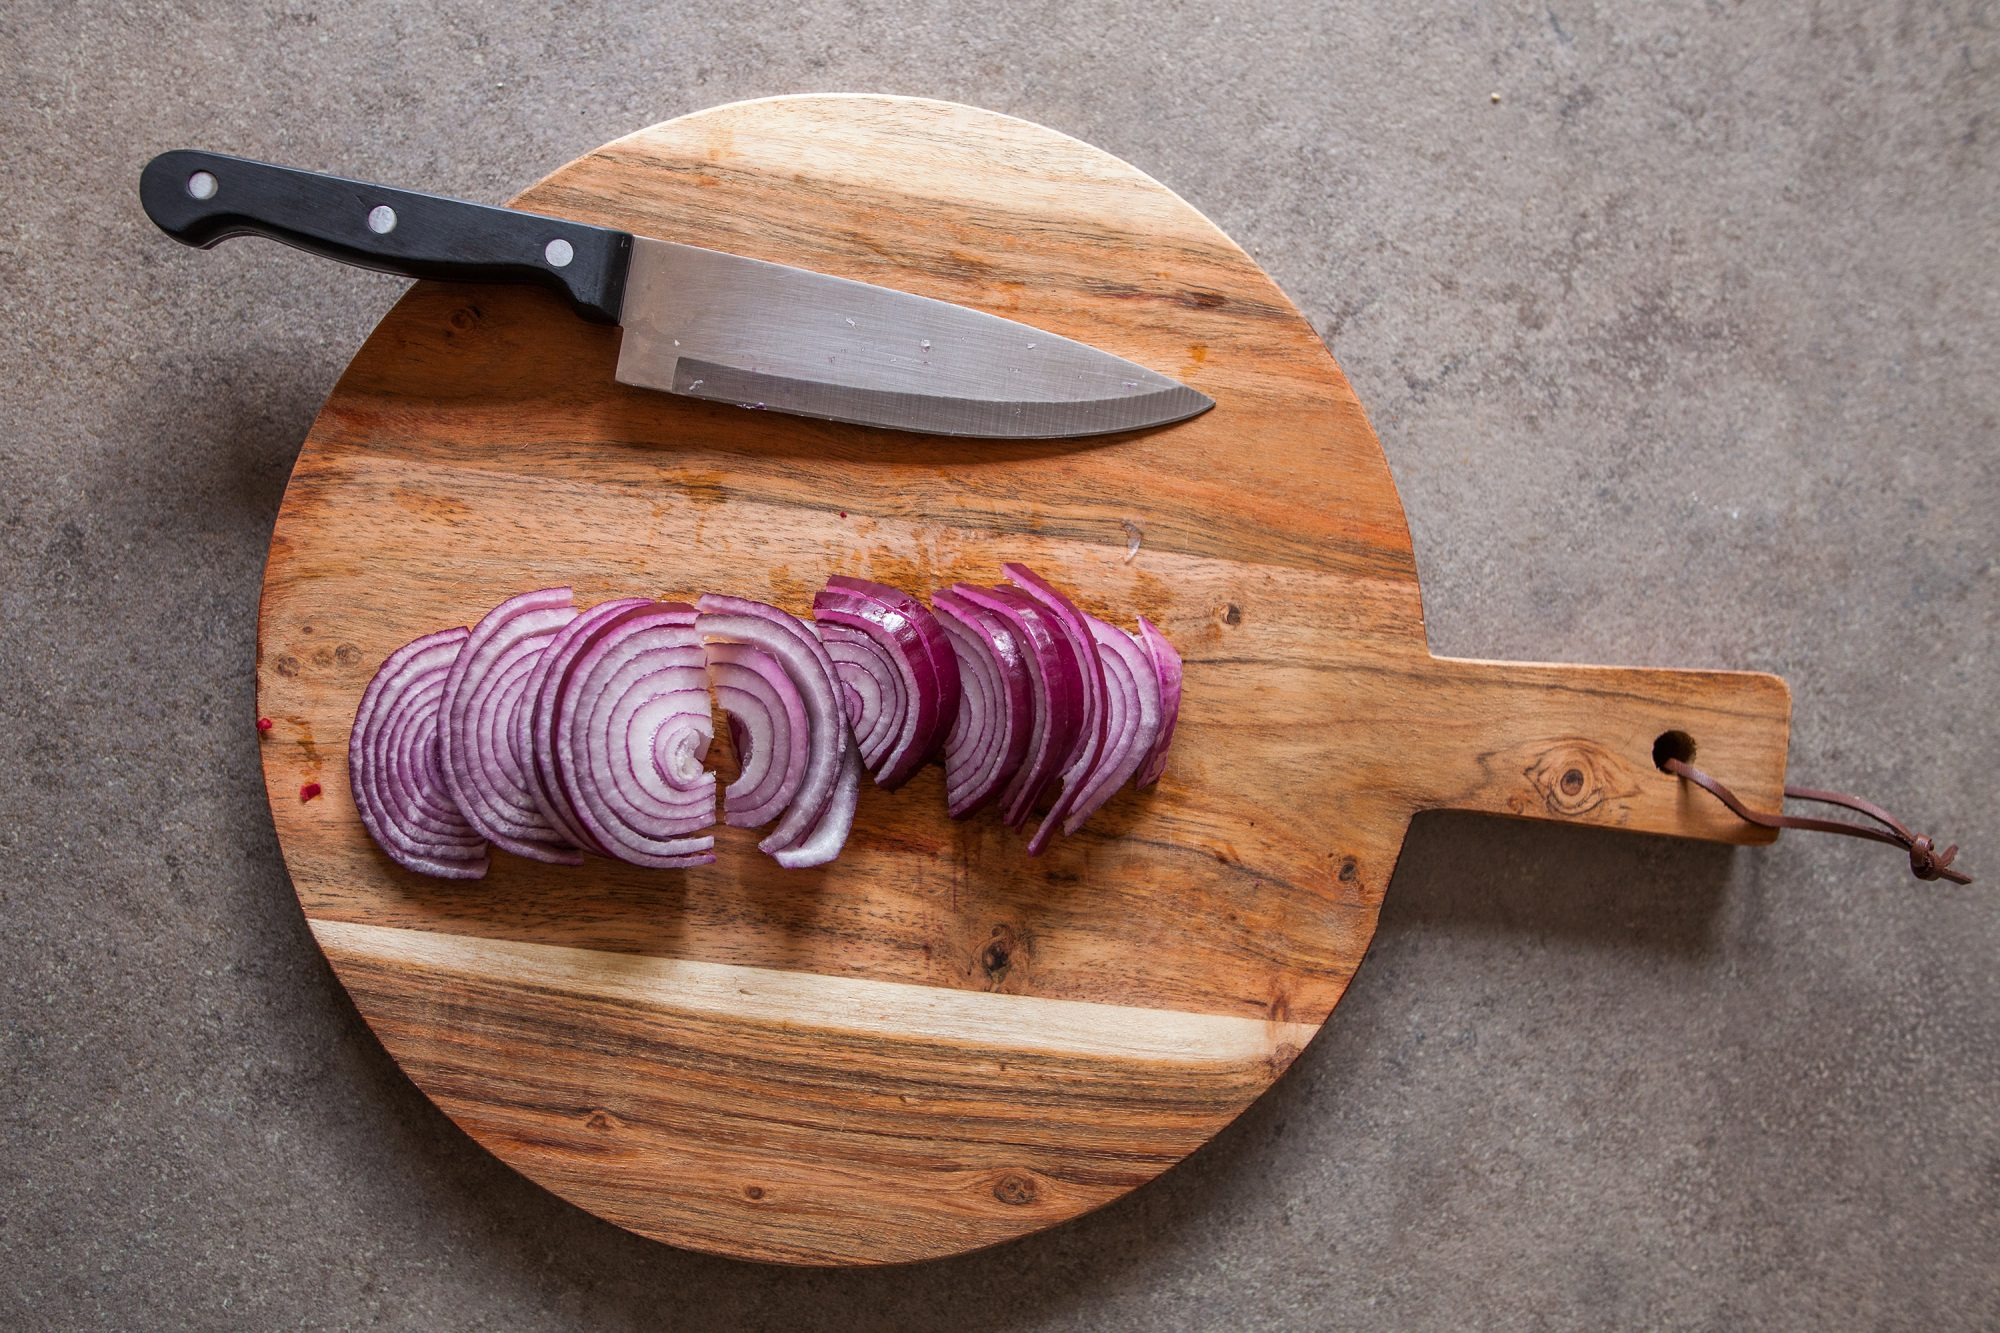 cutting board with a knife and slice red onion